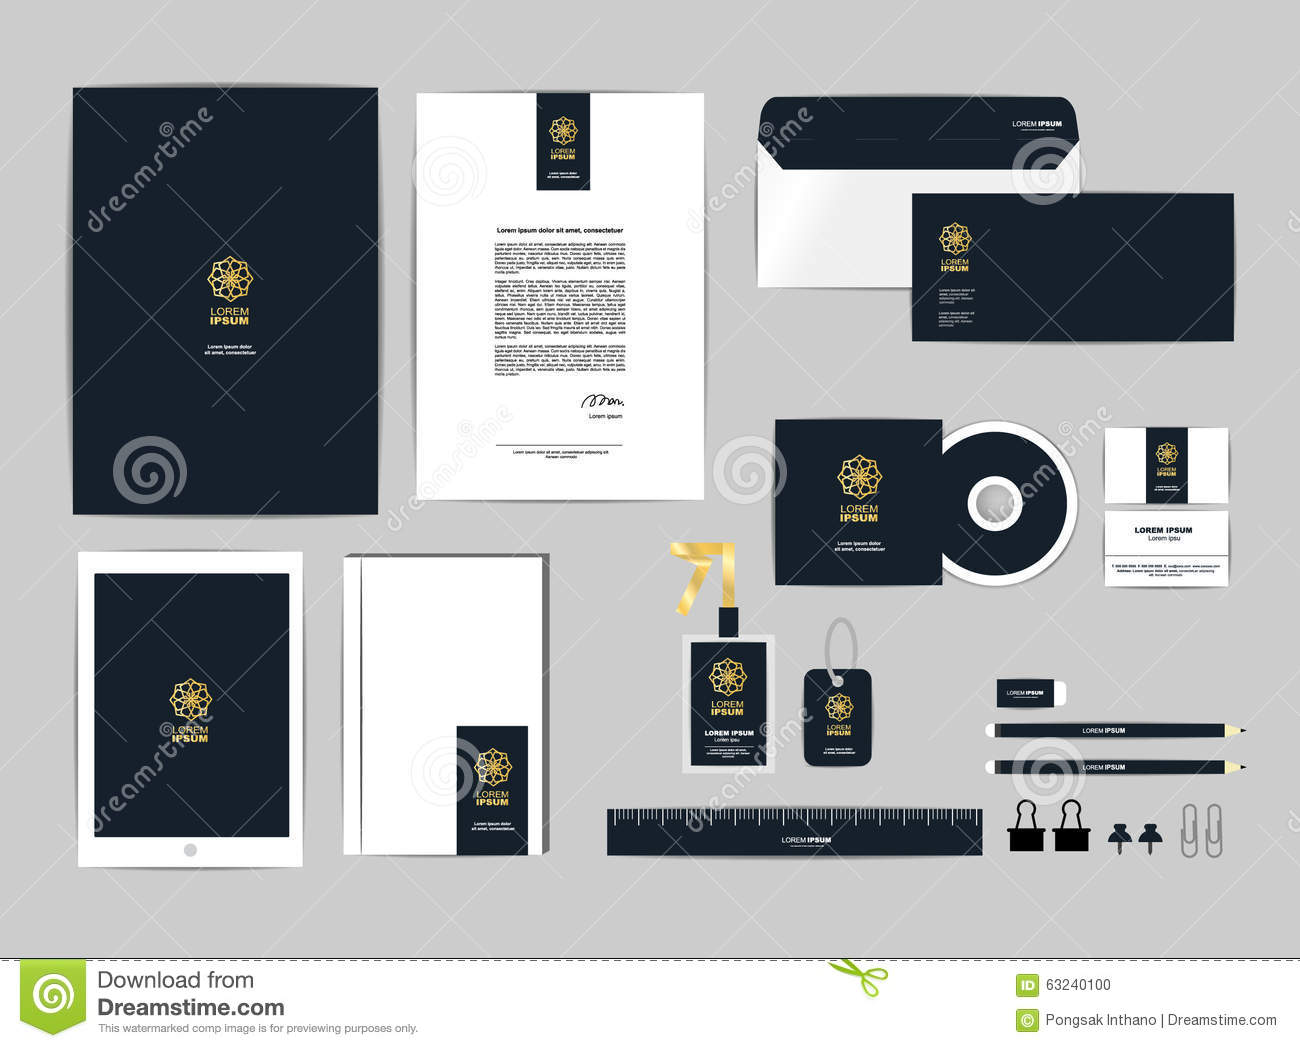 Corporate Identity Template For Your Business Includes CD Cover ...